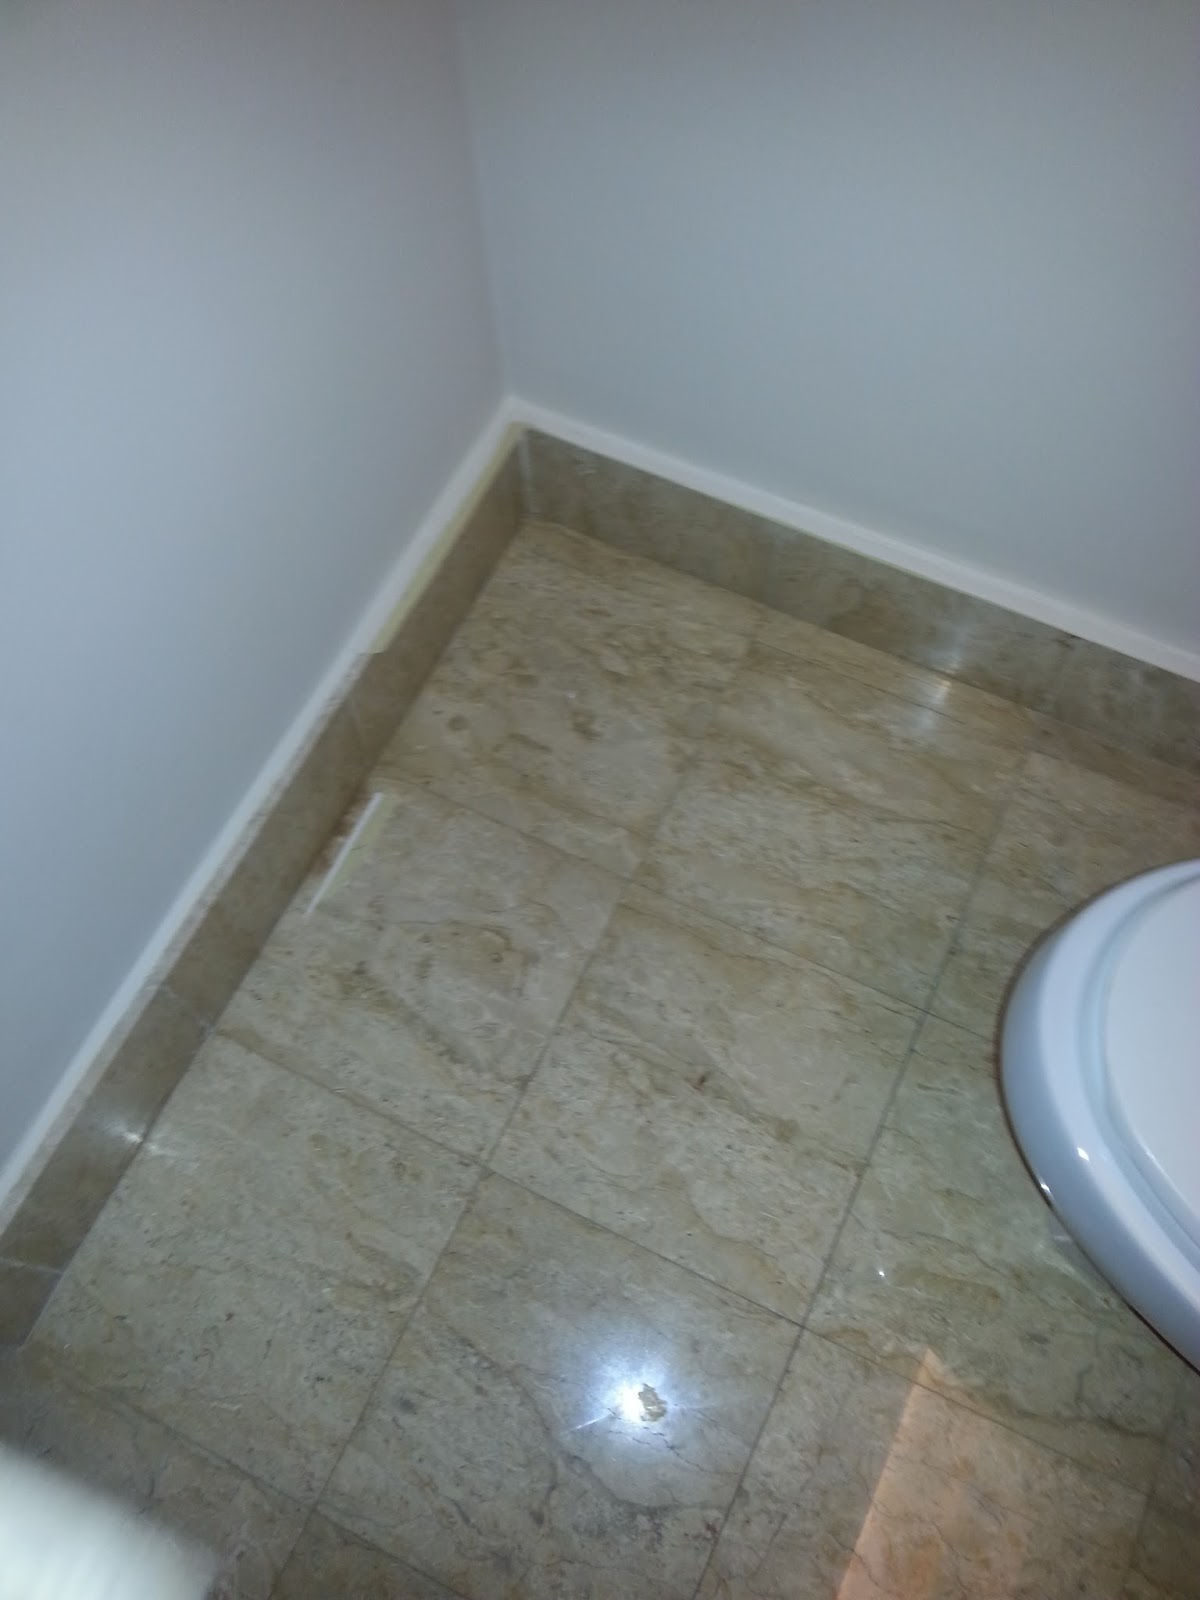 Inter-floor leakage - Causes, Impacts, Investigations and Repairs